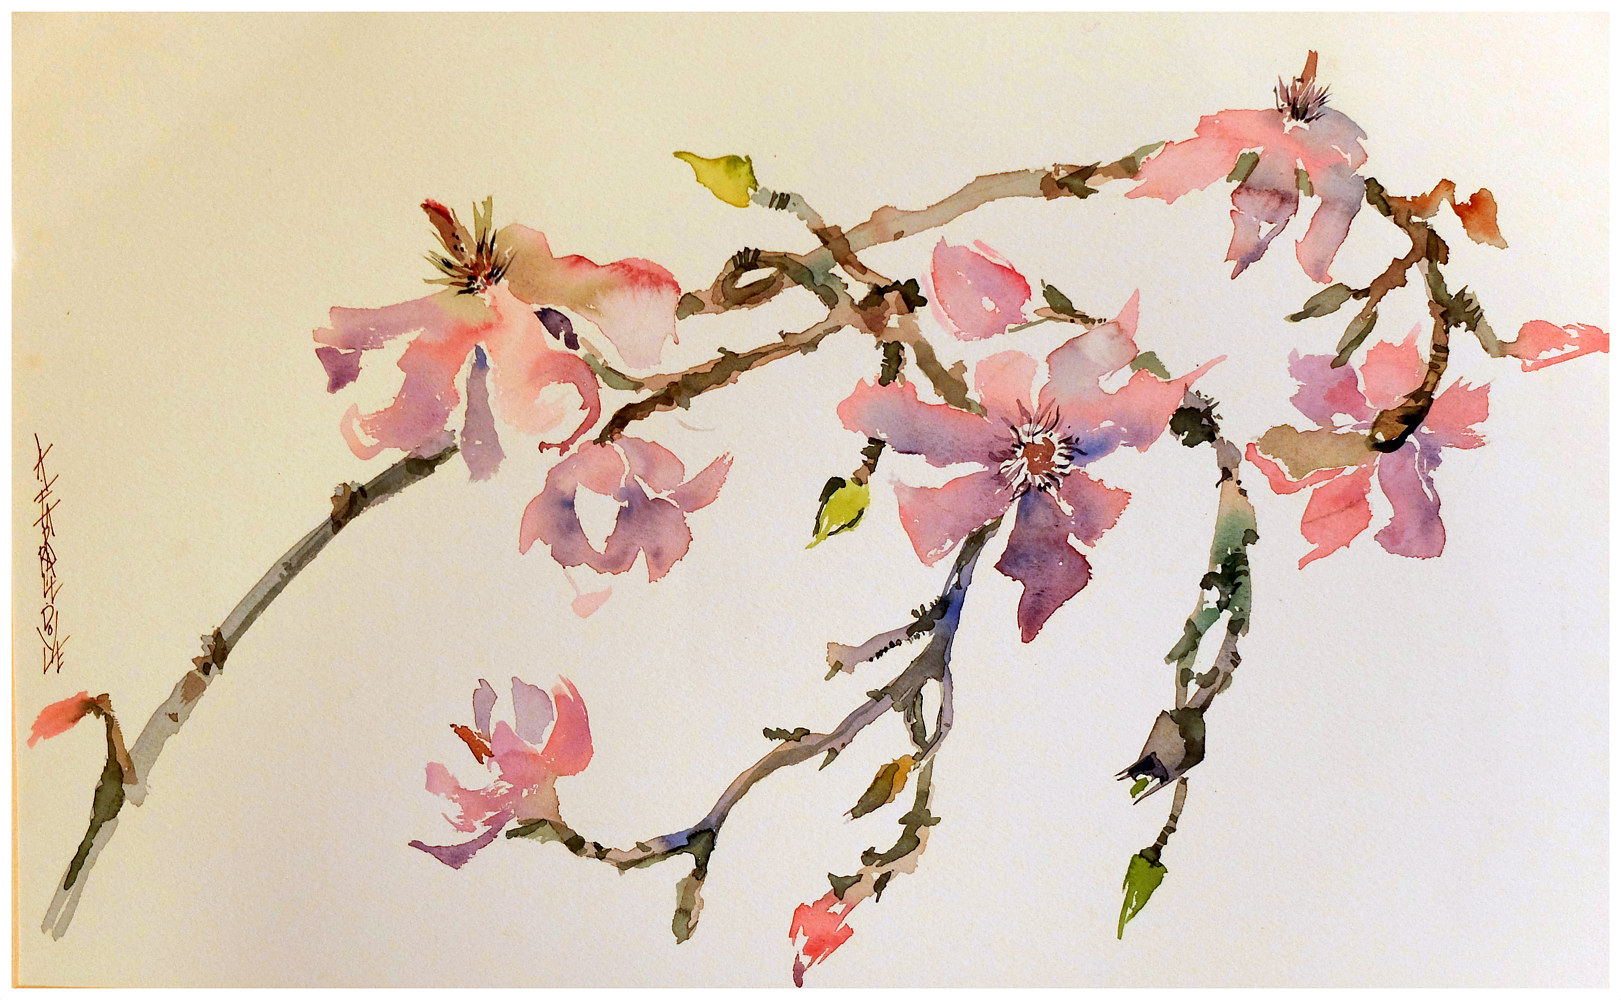 Magnolia spray, 16x20, watercolour by Anne Farrall Doyle